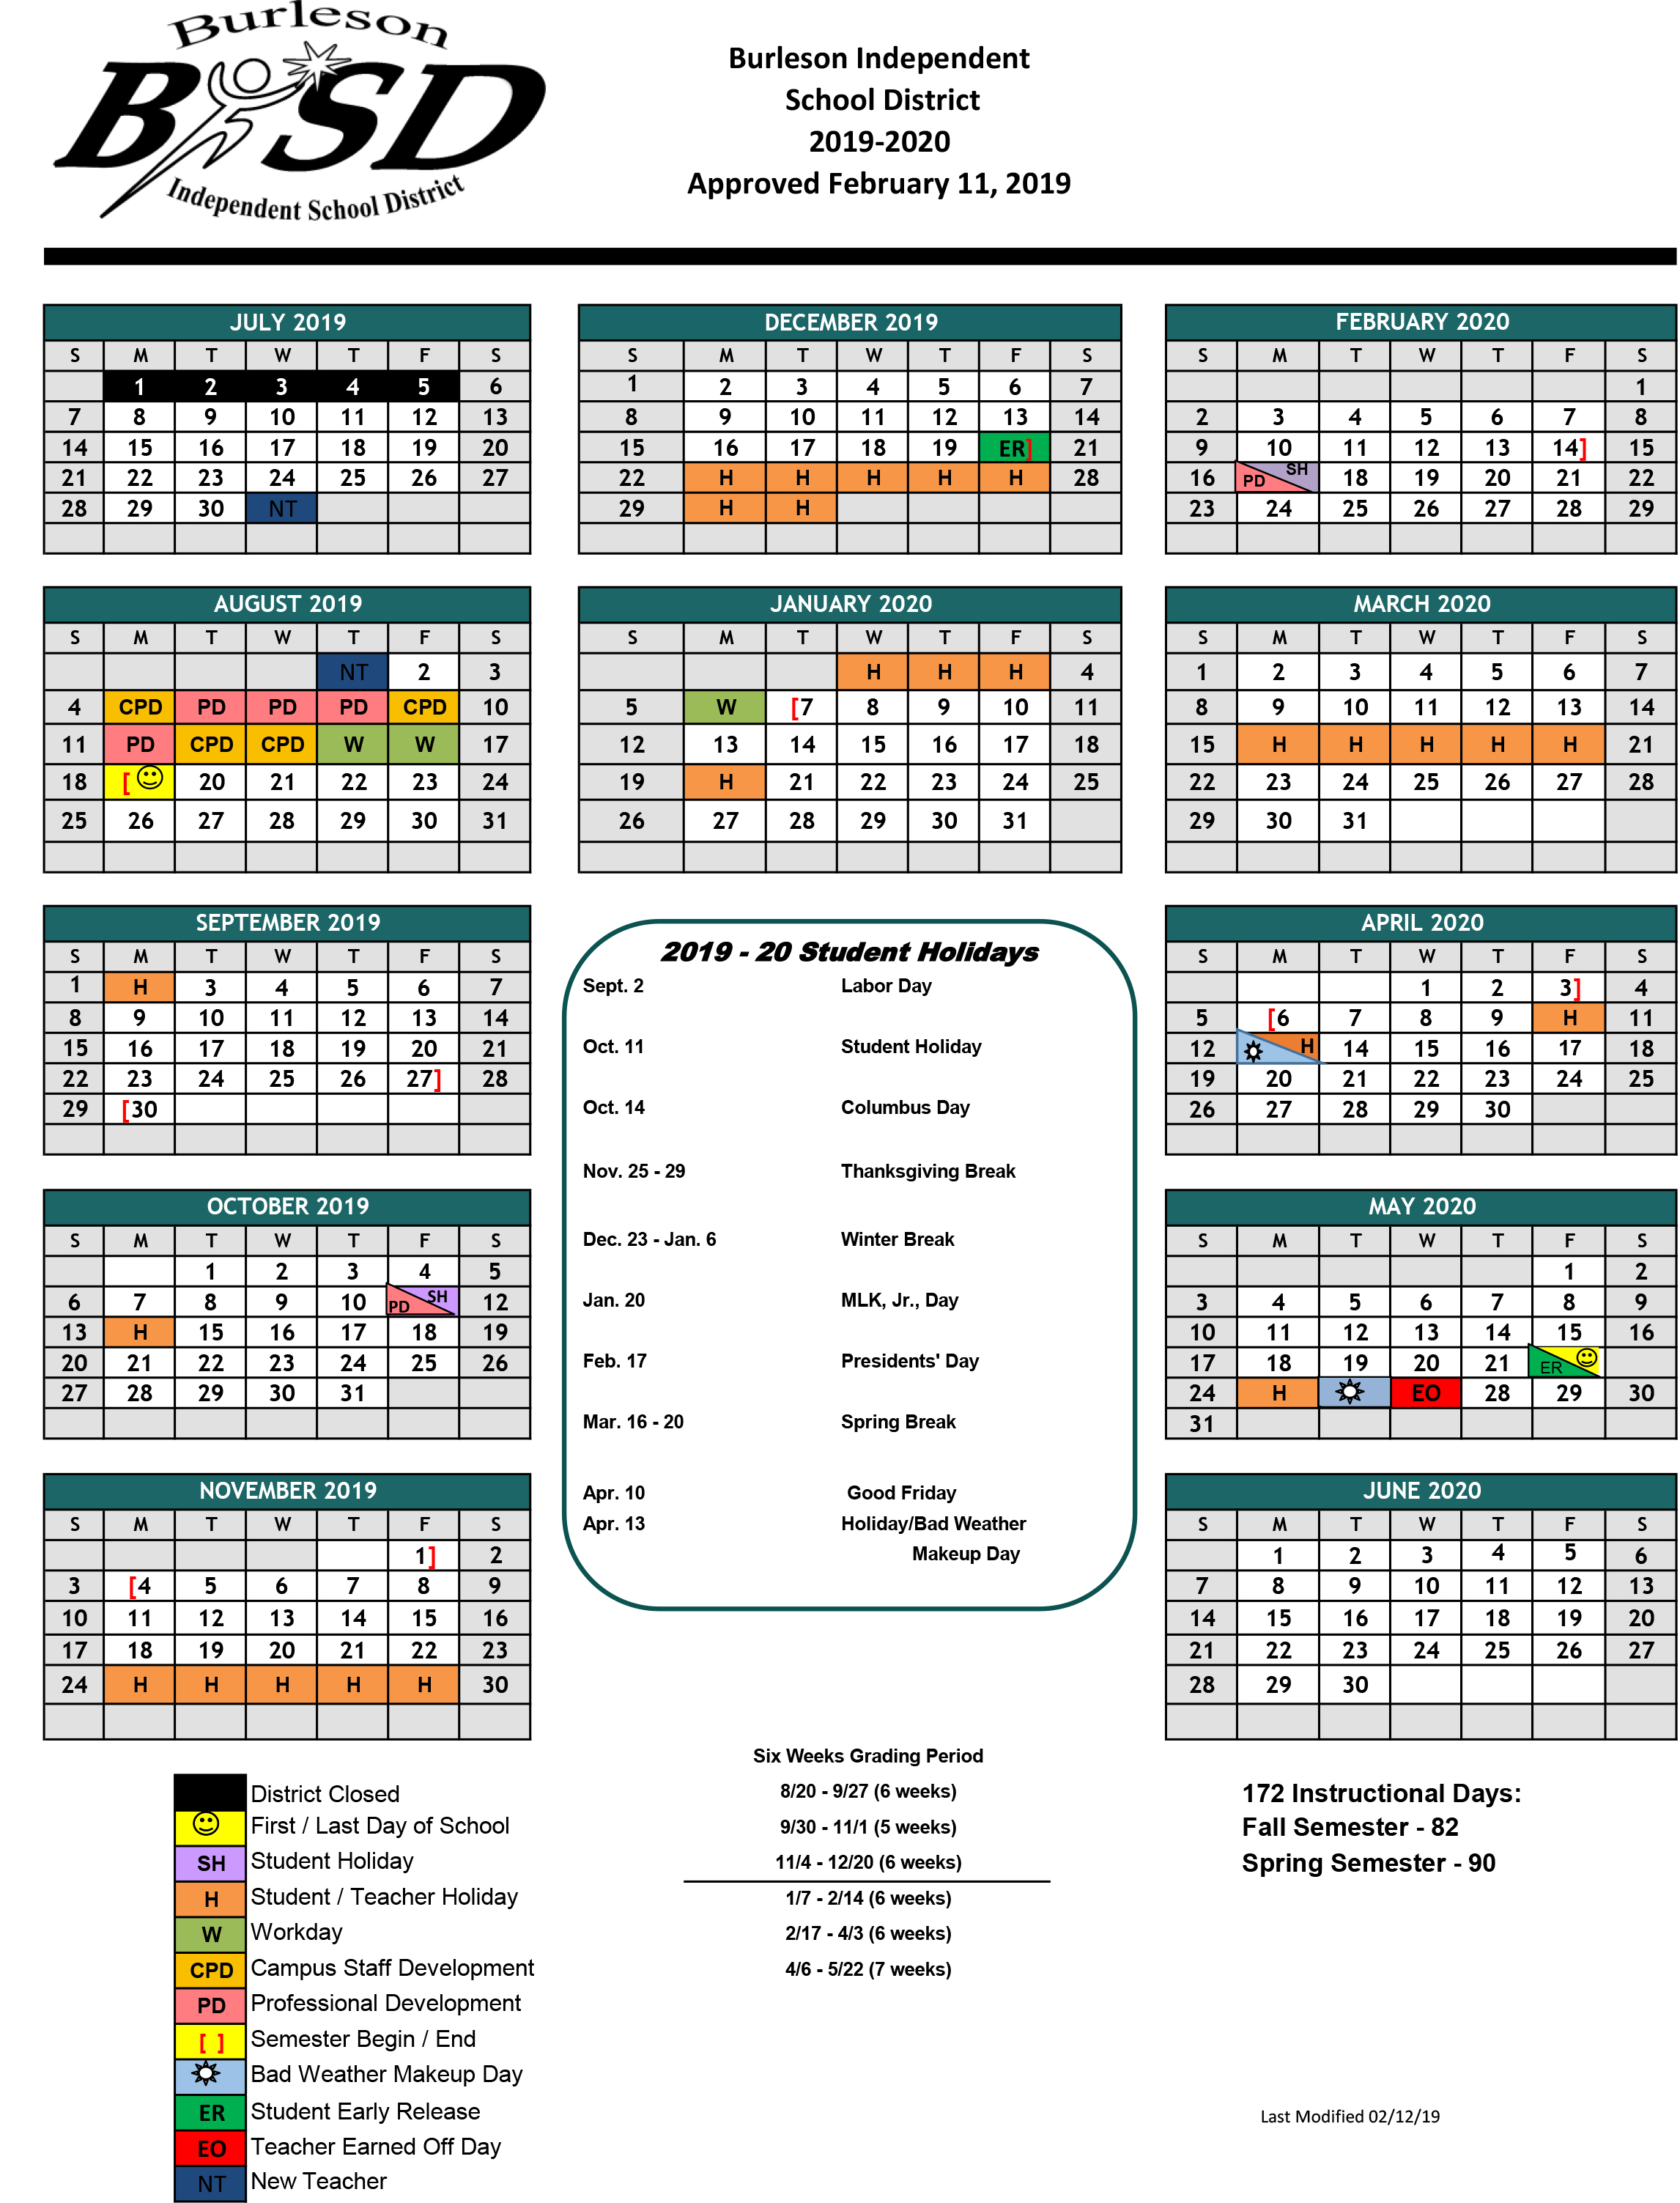 Brownsville Isd Calendar 2020 Burleson ISD Student Calendar for 2019 20 School Year Approved